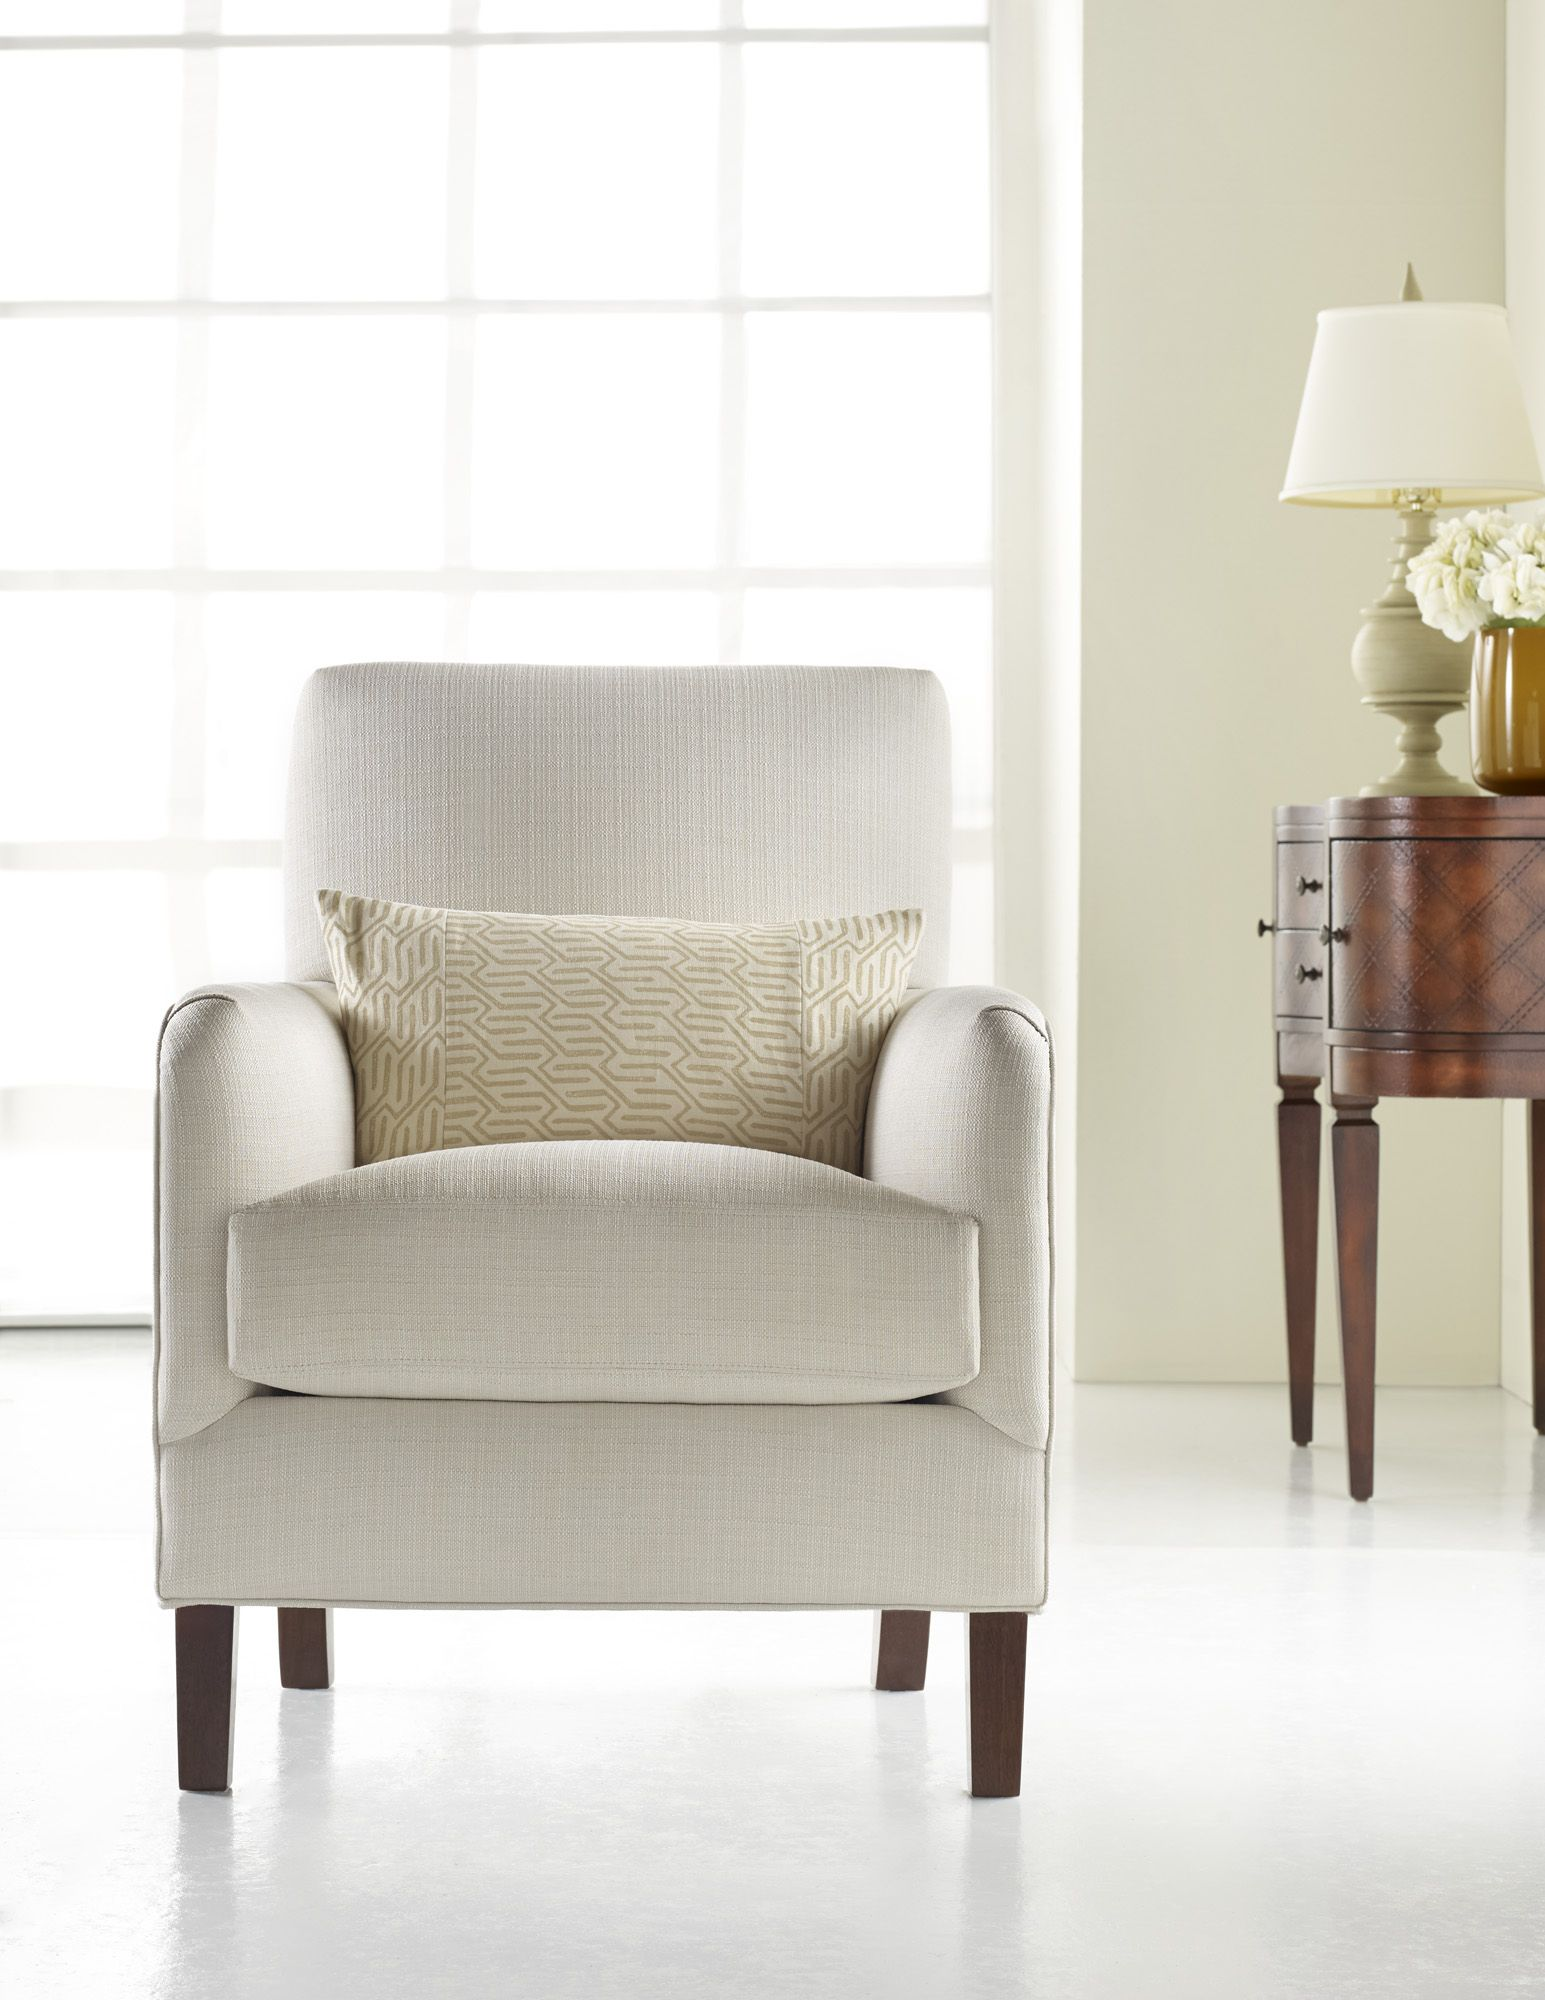 H Contract Furniture | HC9520 Jaxon Lounge Chair